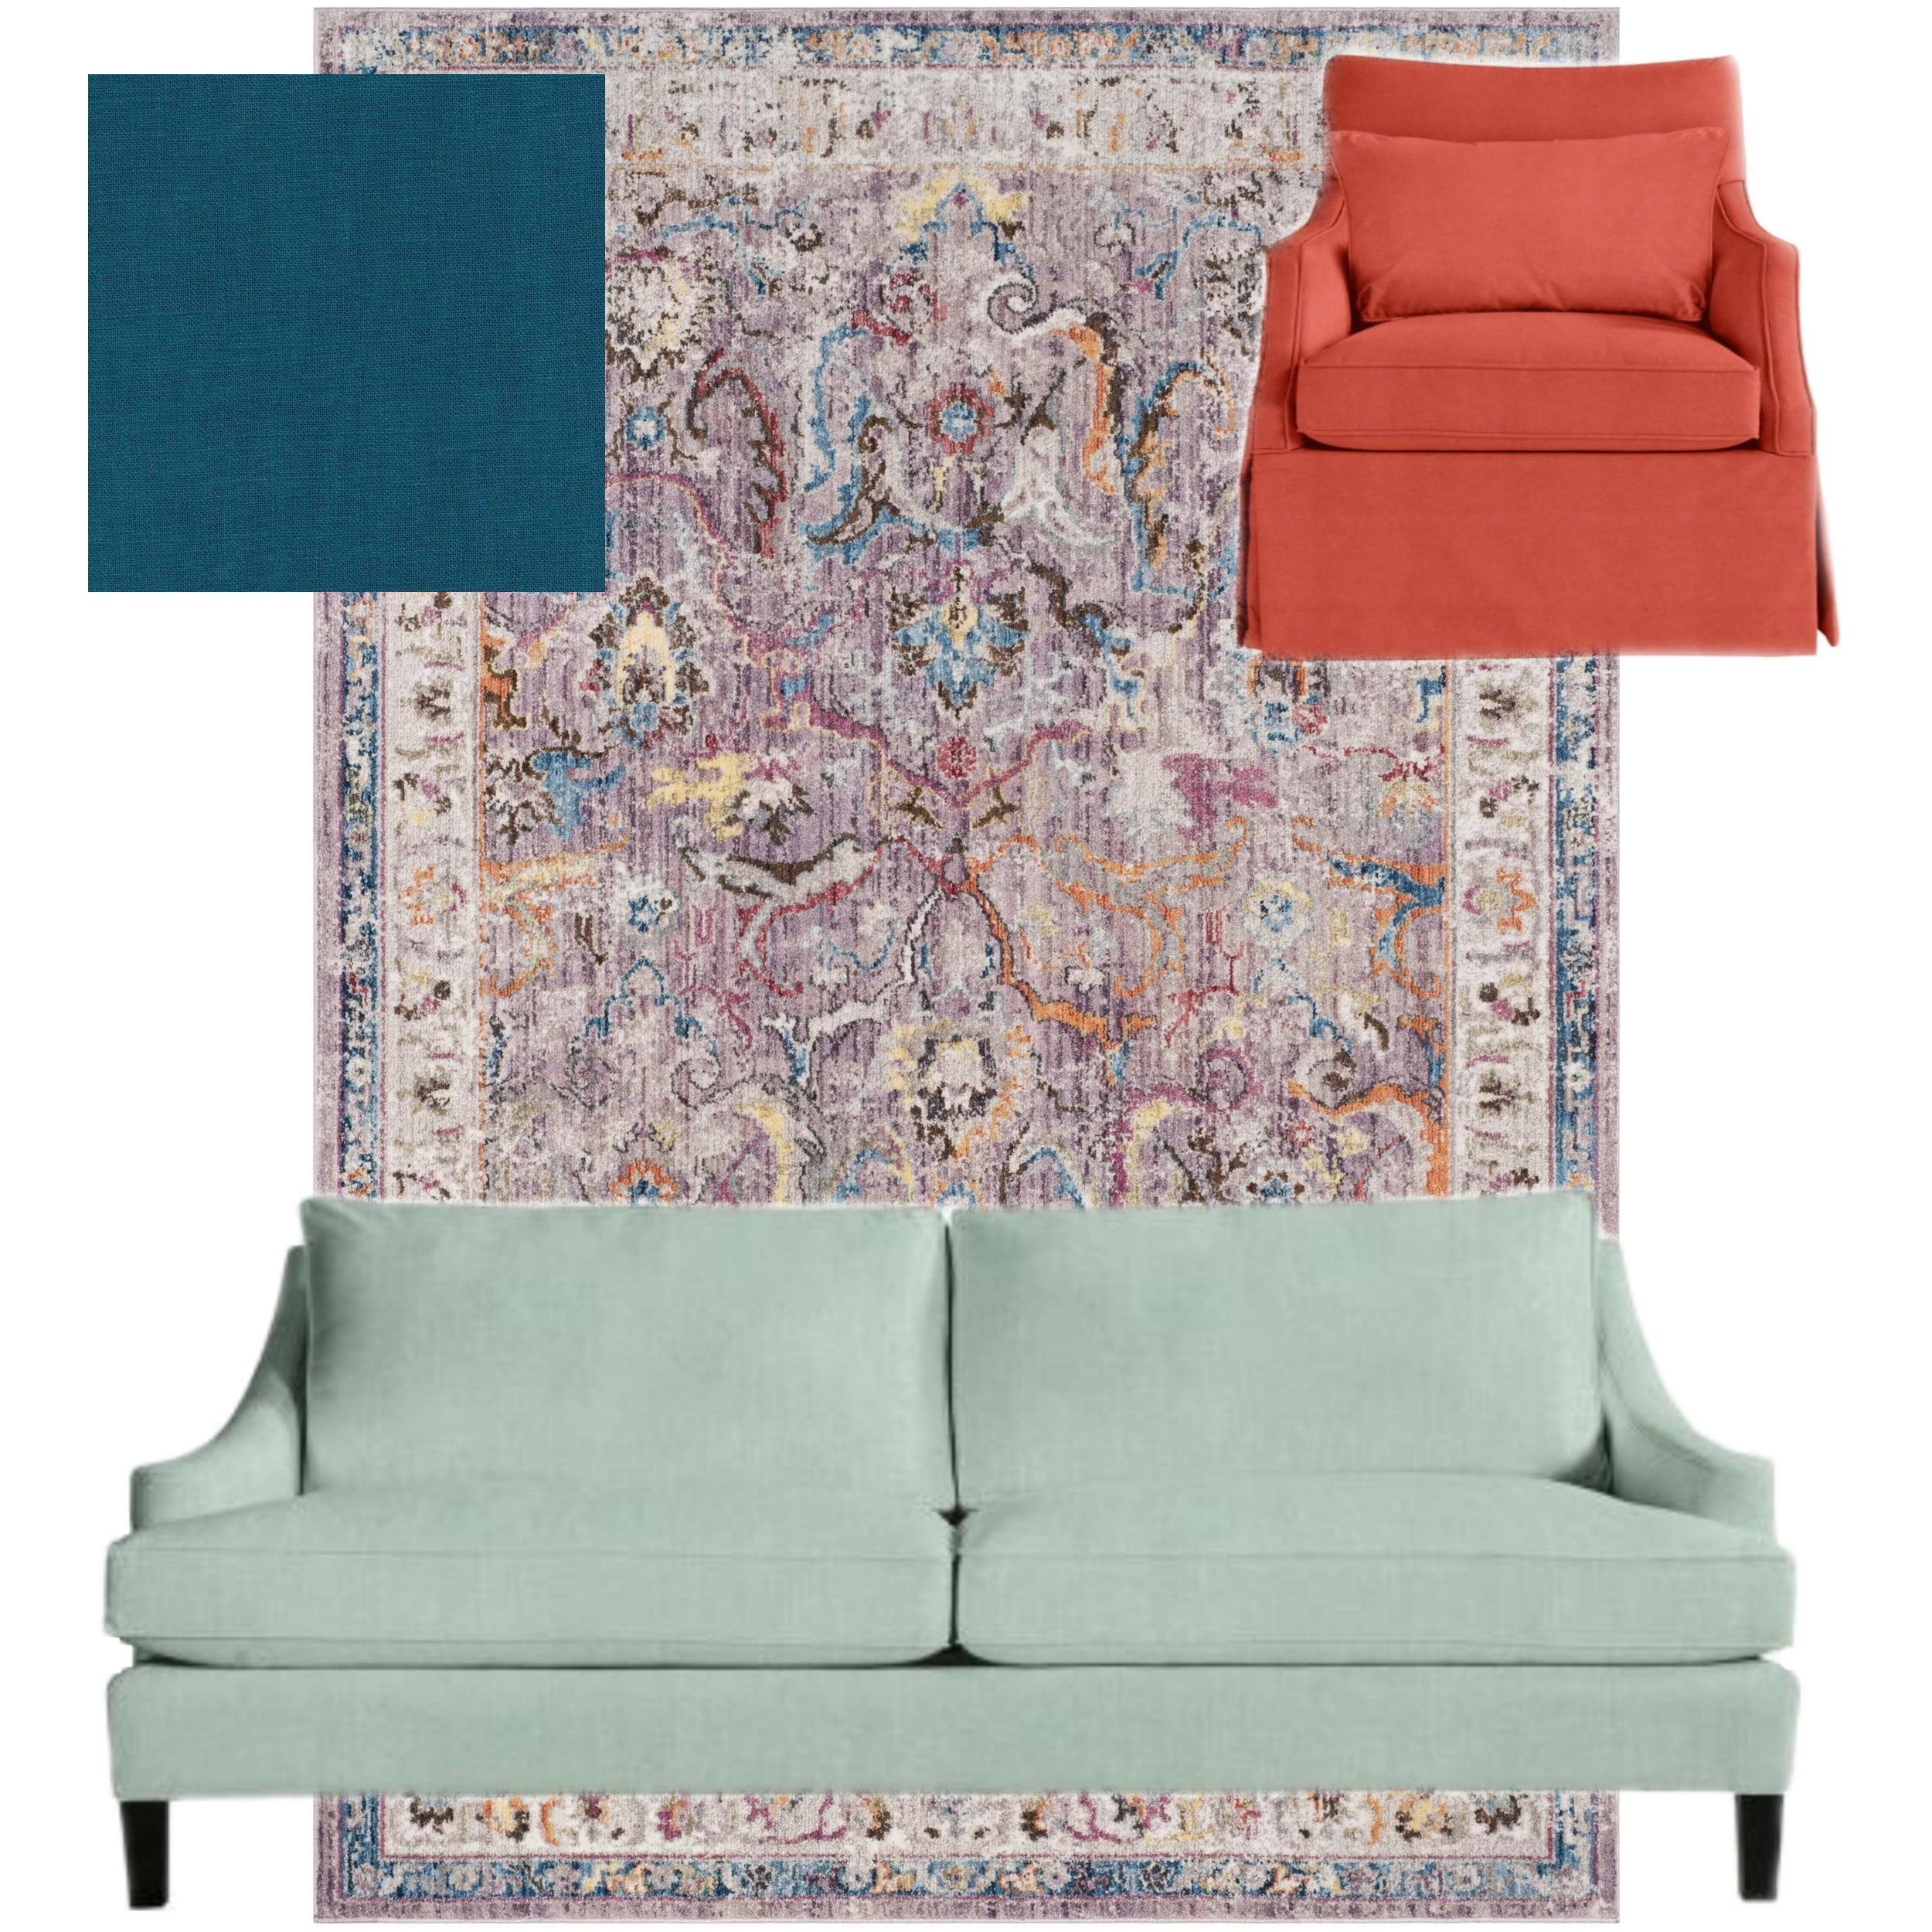 new rug and other options for living room - with green sofa